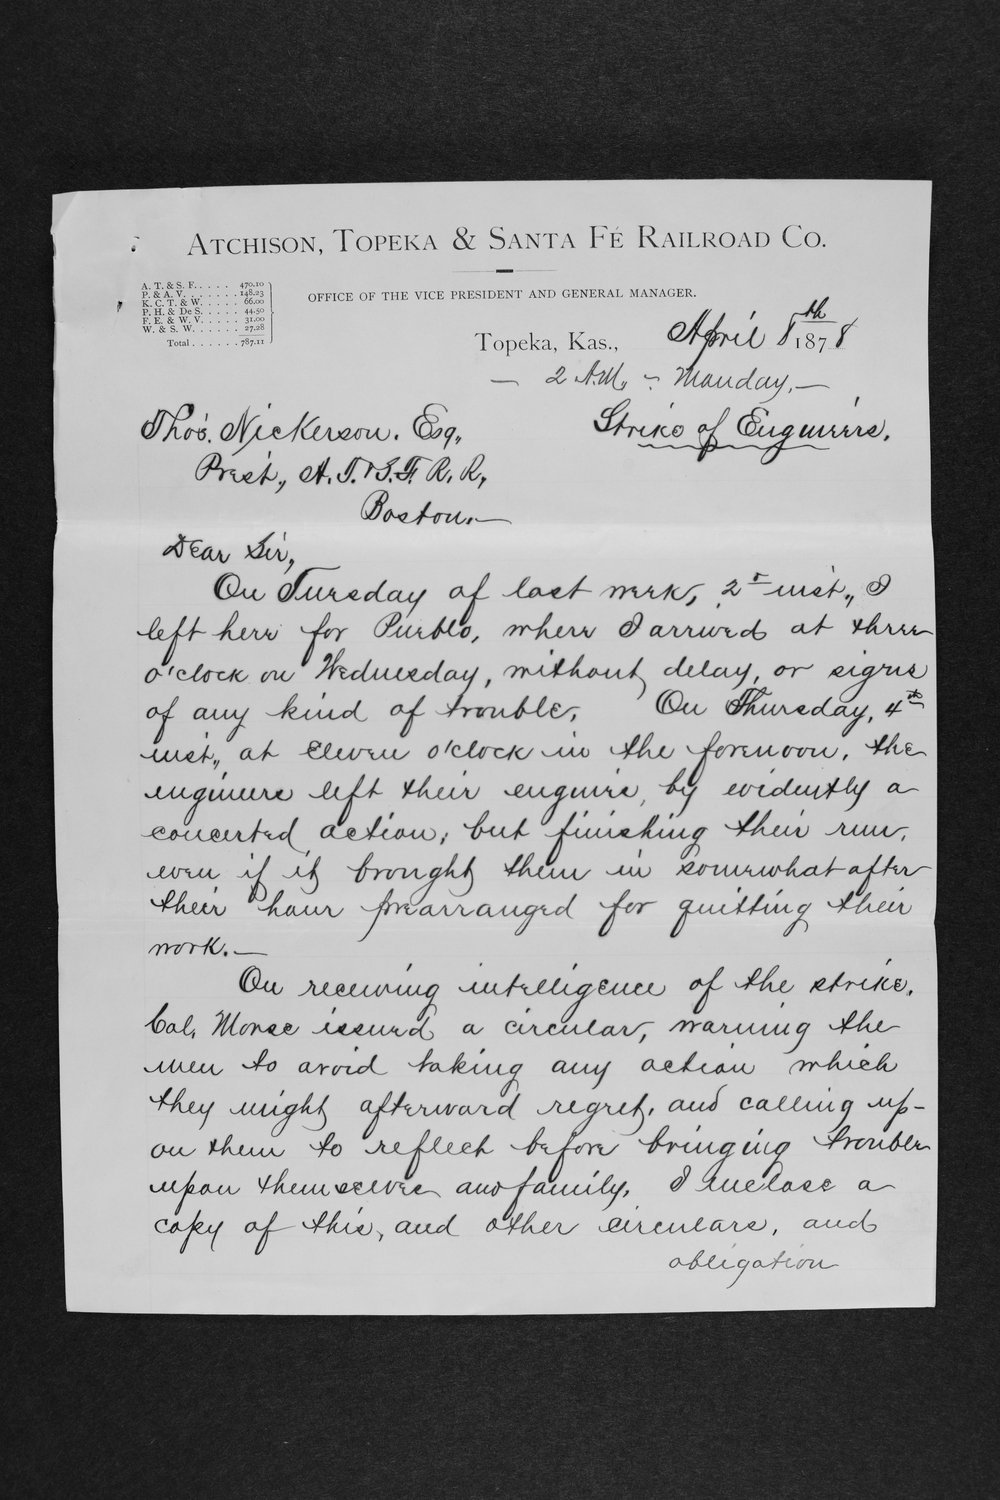 Letter detailing developments in a strikes of engineers - 1